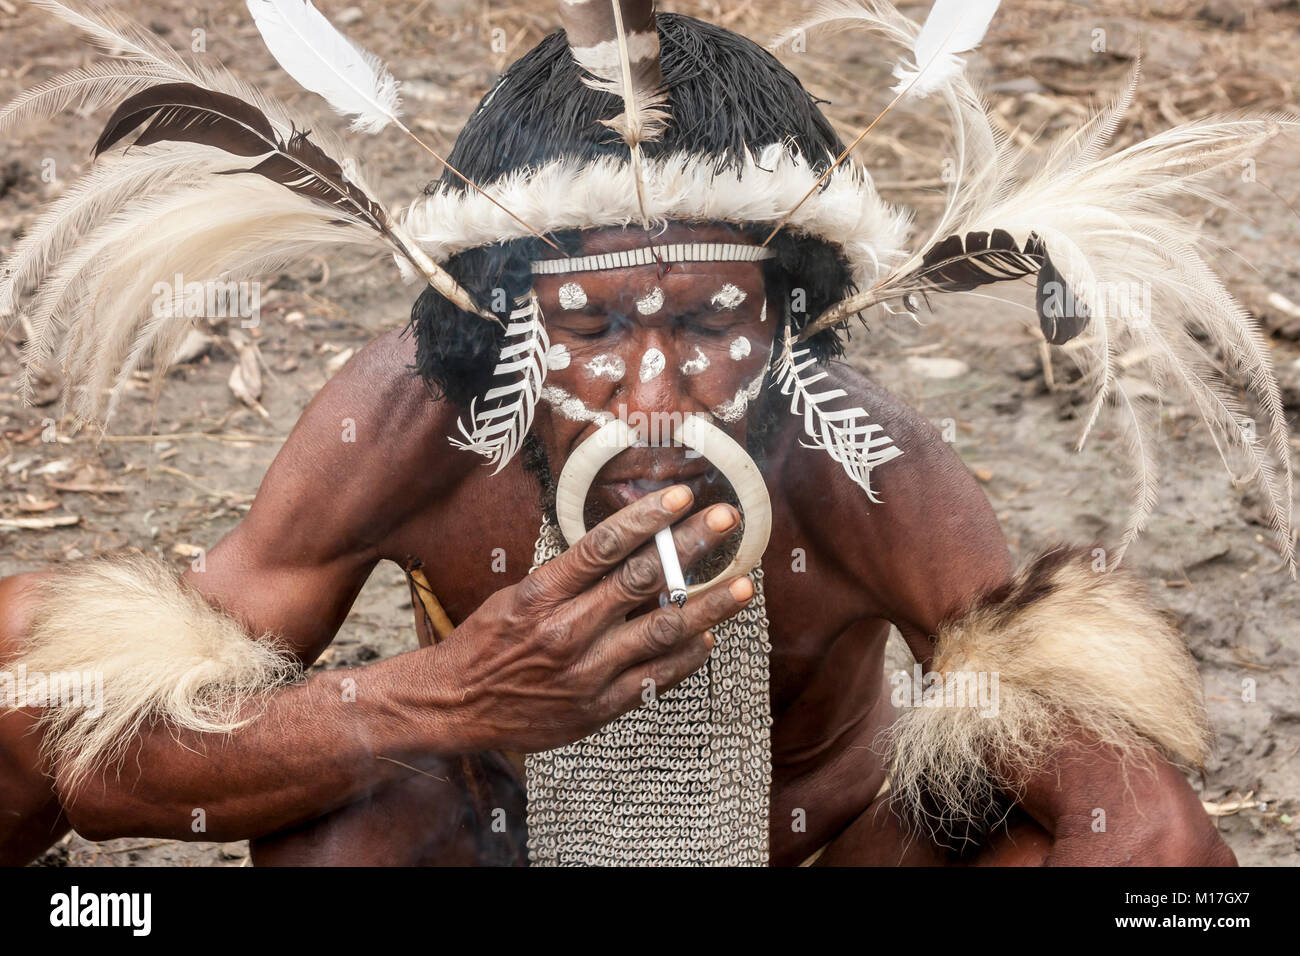 Wamena, Indonesia. The head of the Dani tribe in a traditional dress smoking a cigarette in Dugum Dani Village. - Stock Image